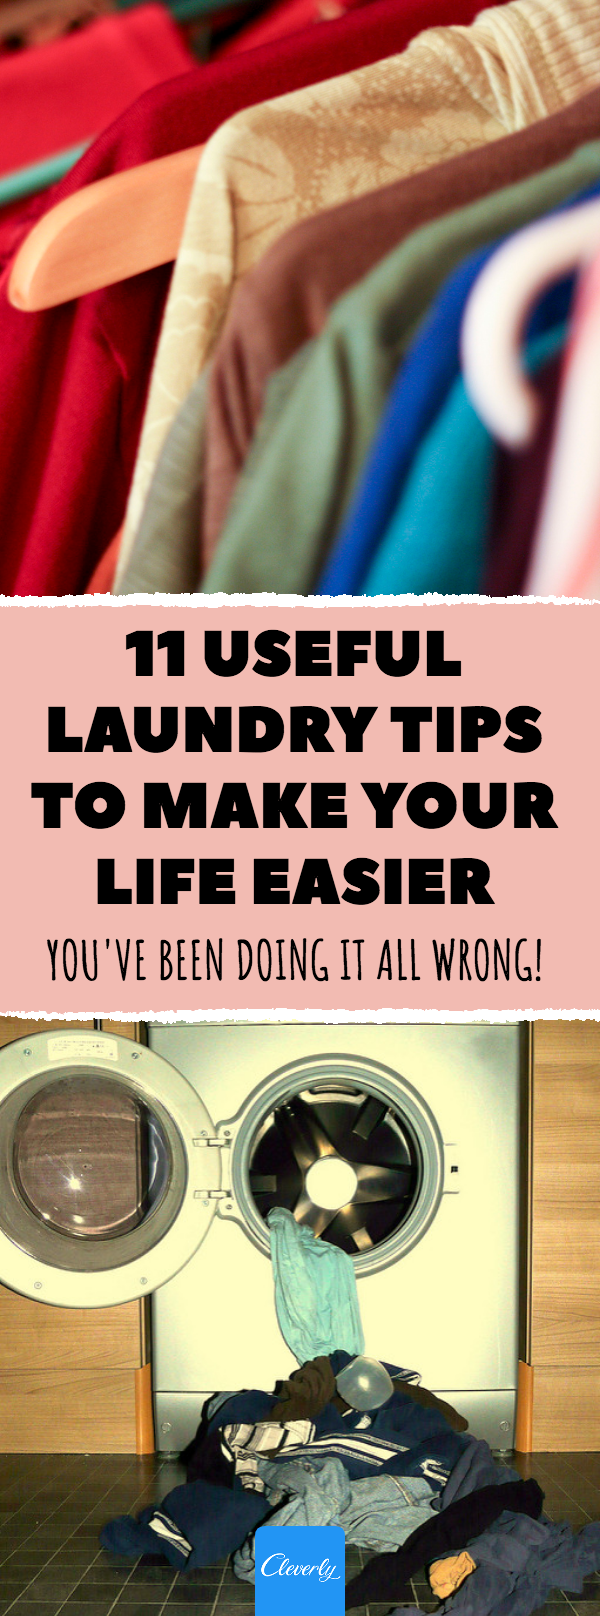 You're Doing It All Wrong 11 Useful Laundry Tips